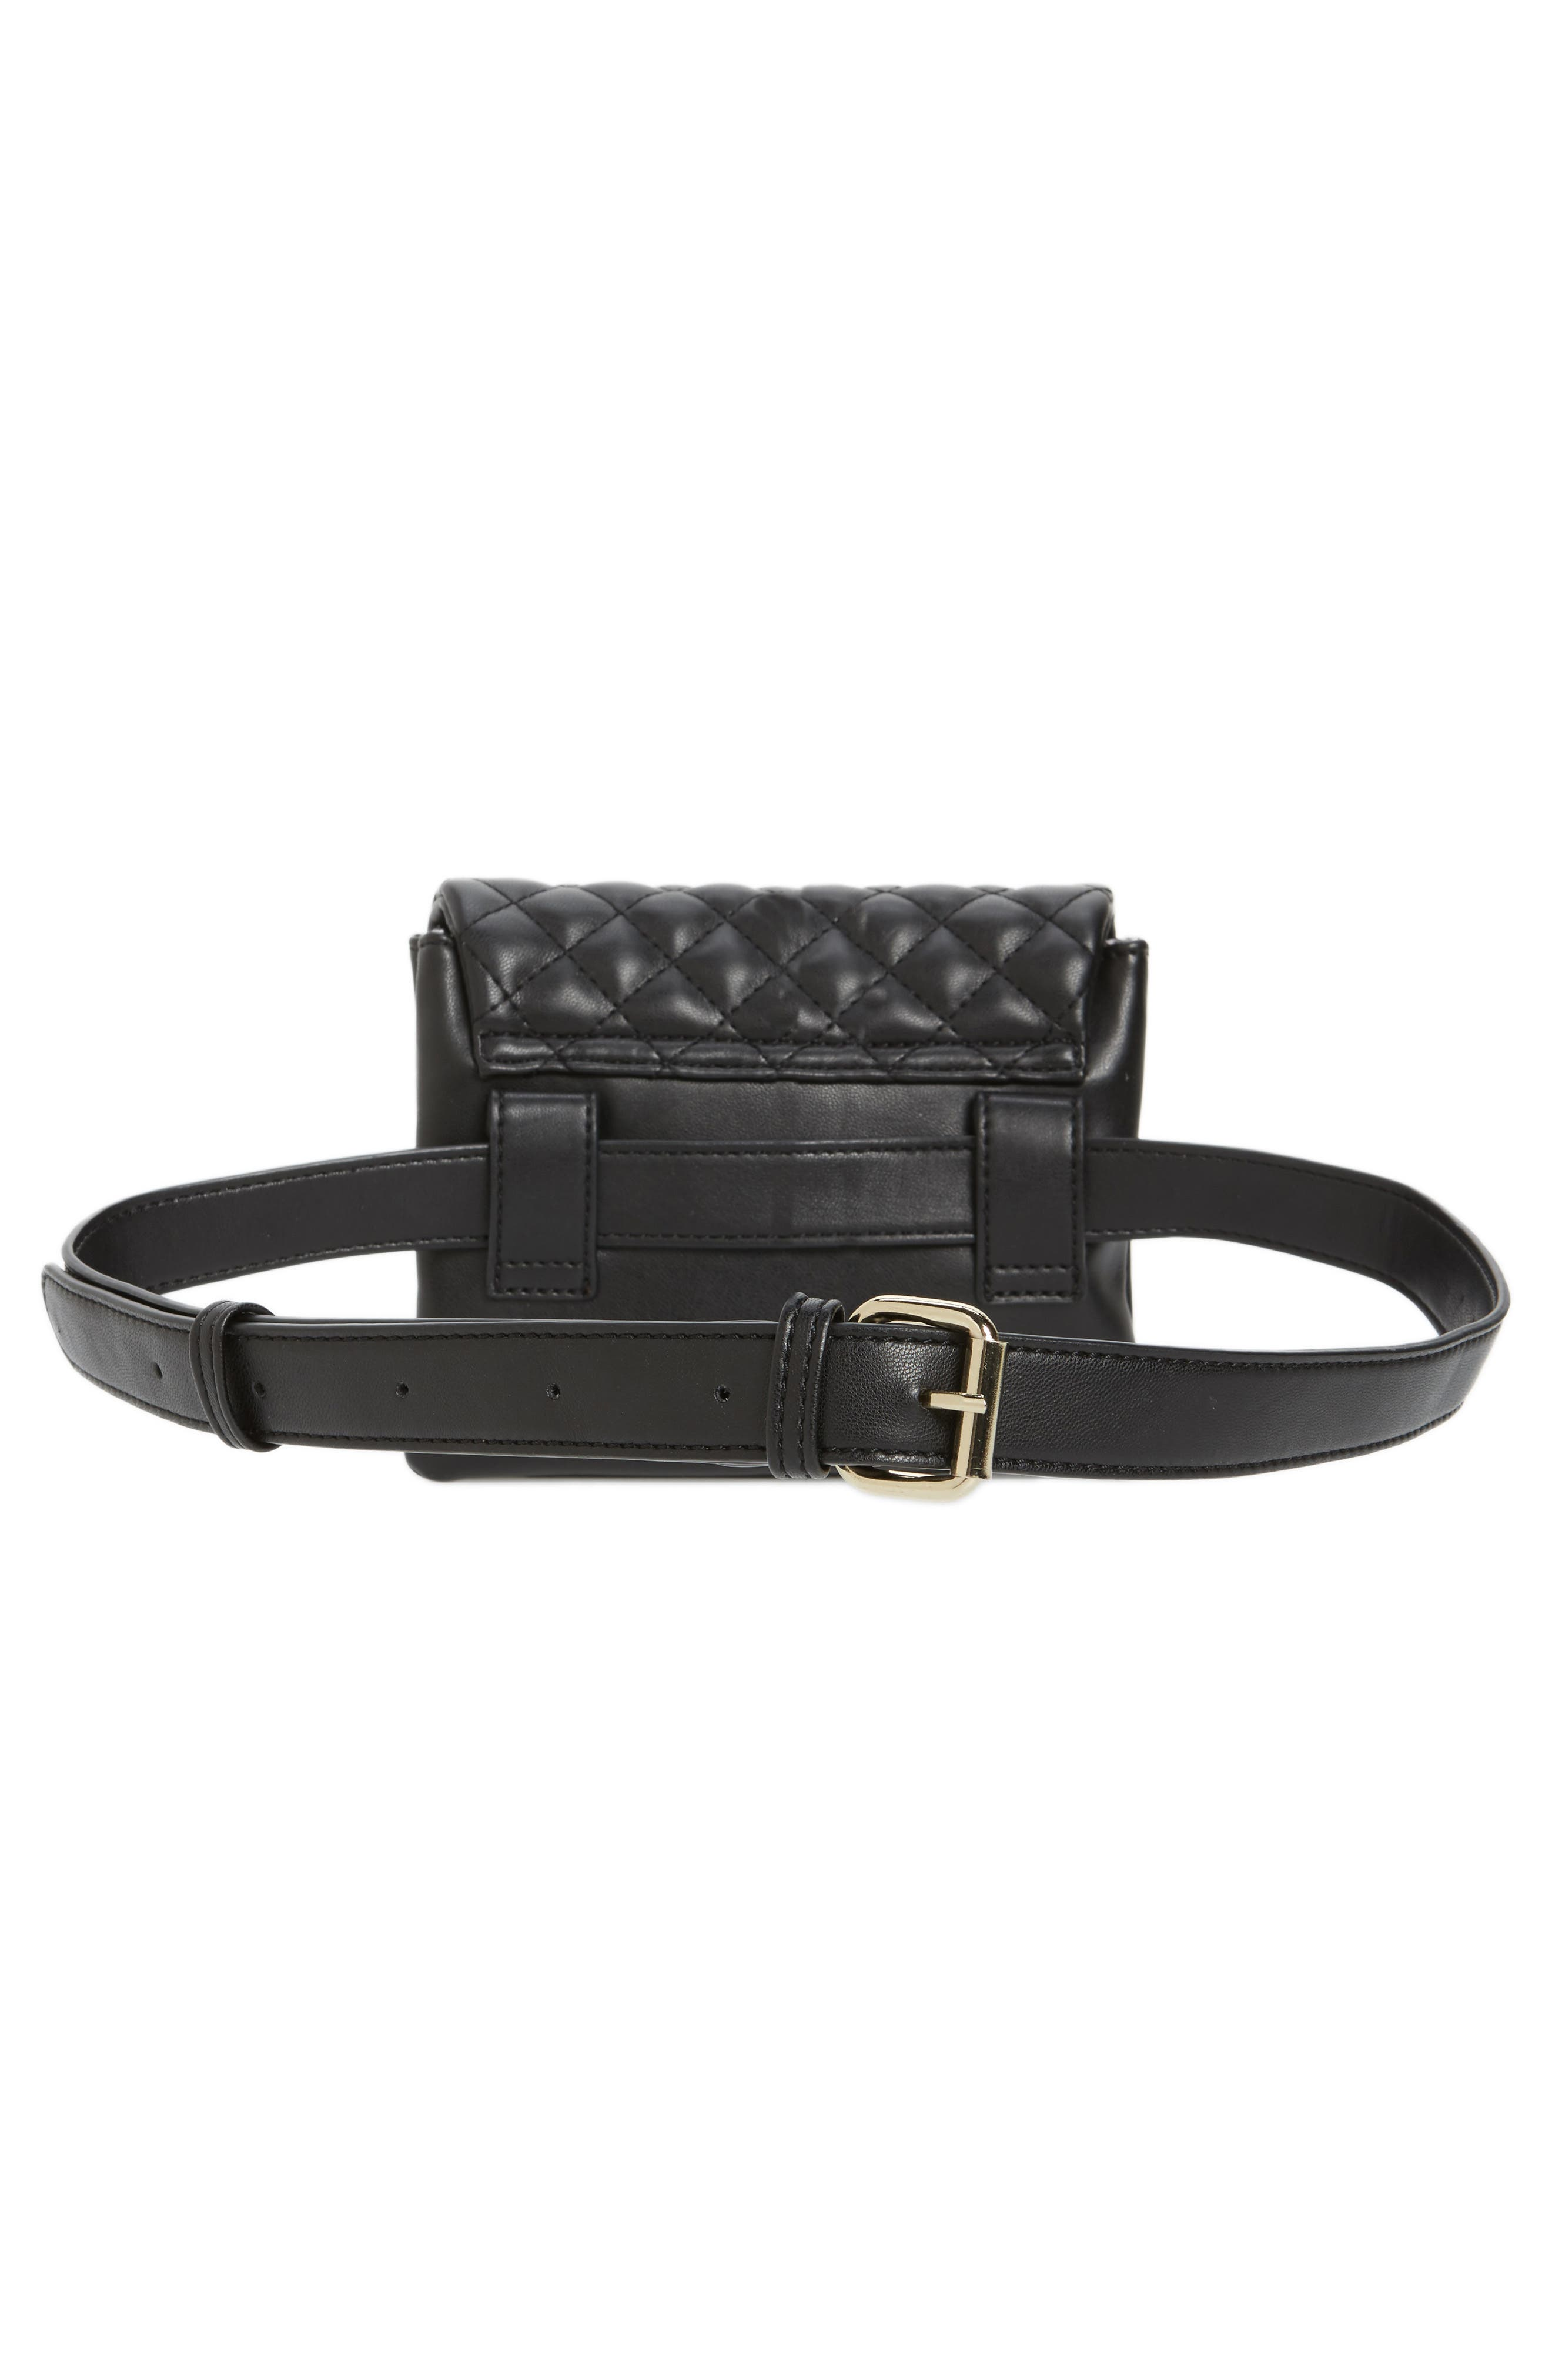 Quilted Vegan Leather Convertible Belt Bag,                             Alternate thumbnail 5, color,                             001